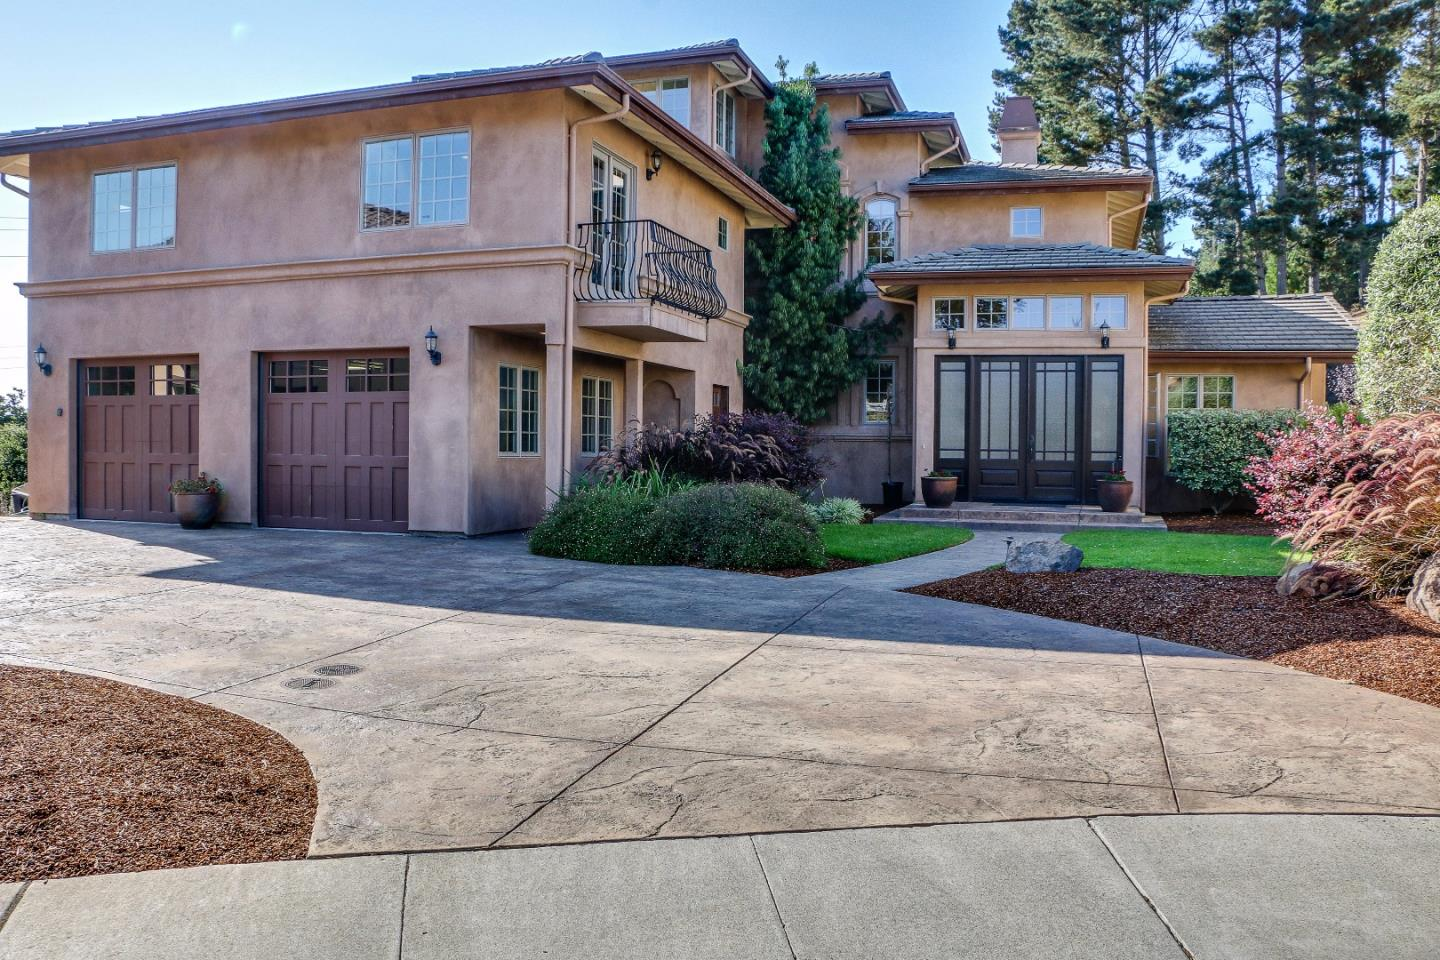 Single Family Home for Sale at 2285 Silver Stone Street Royal Oaks, California 95076 United States